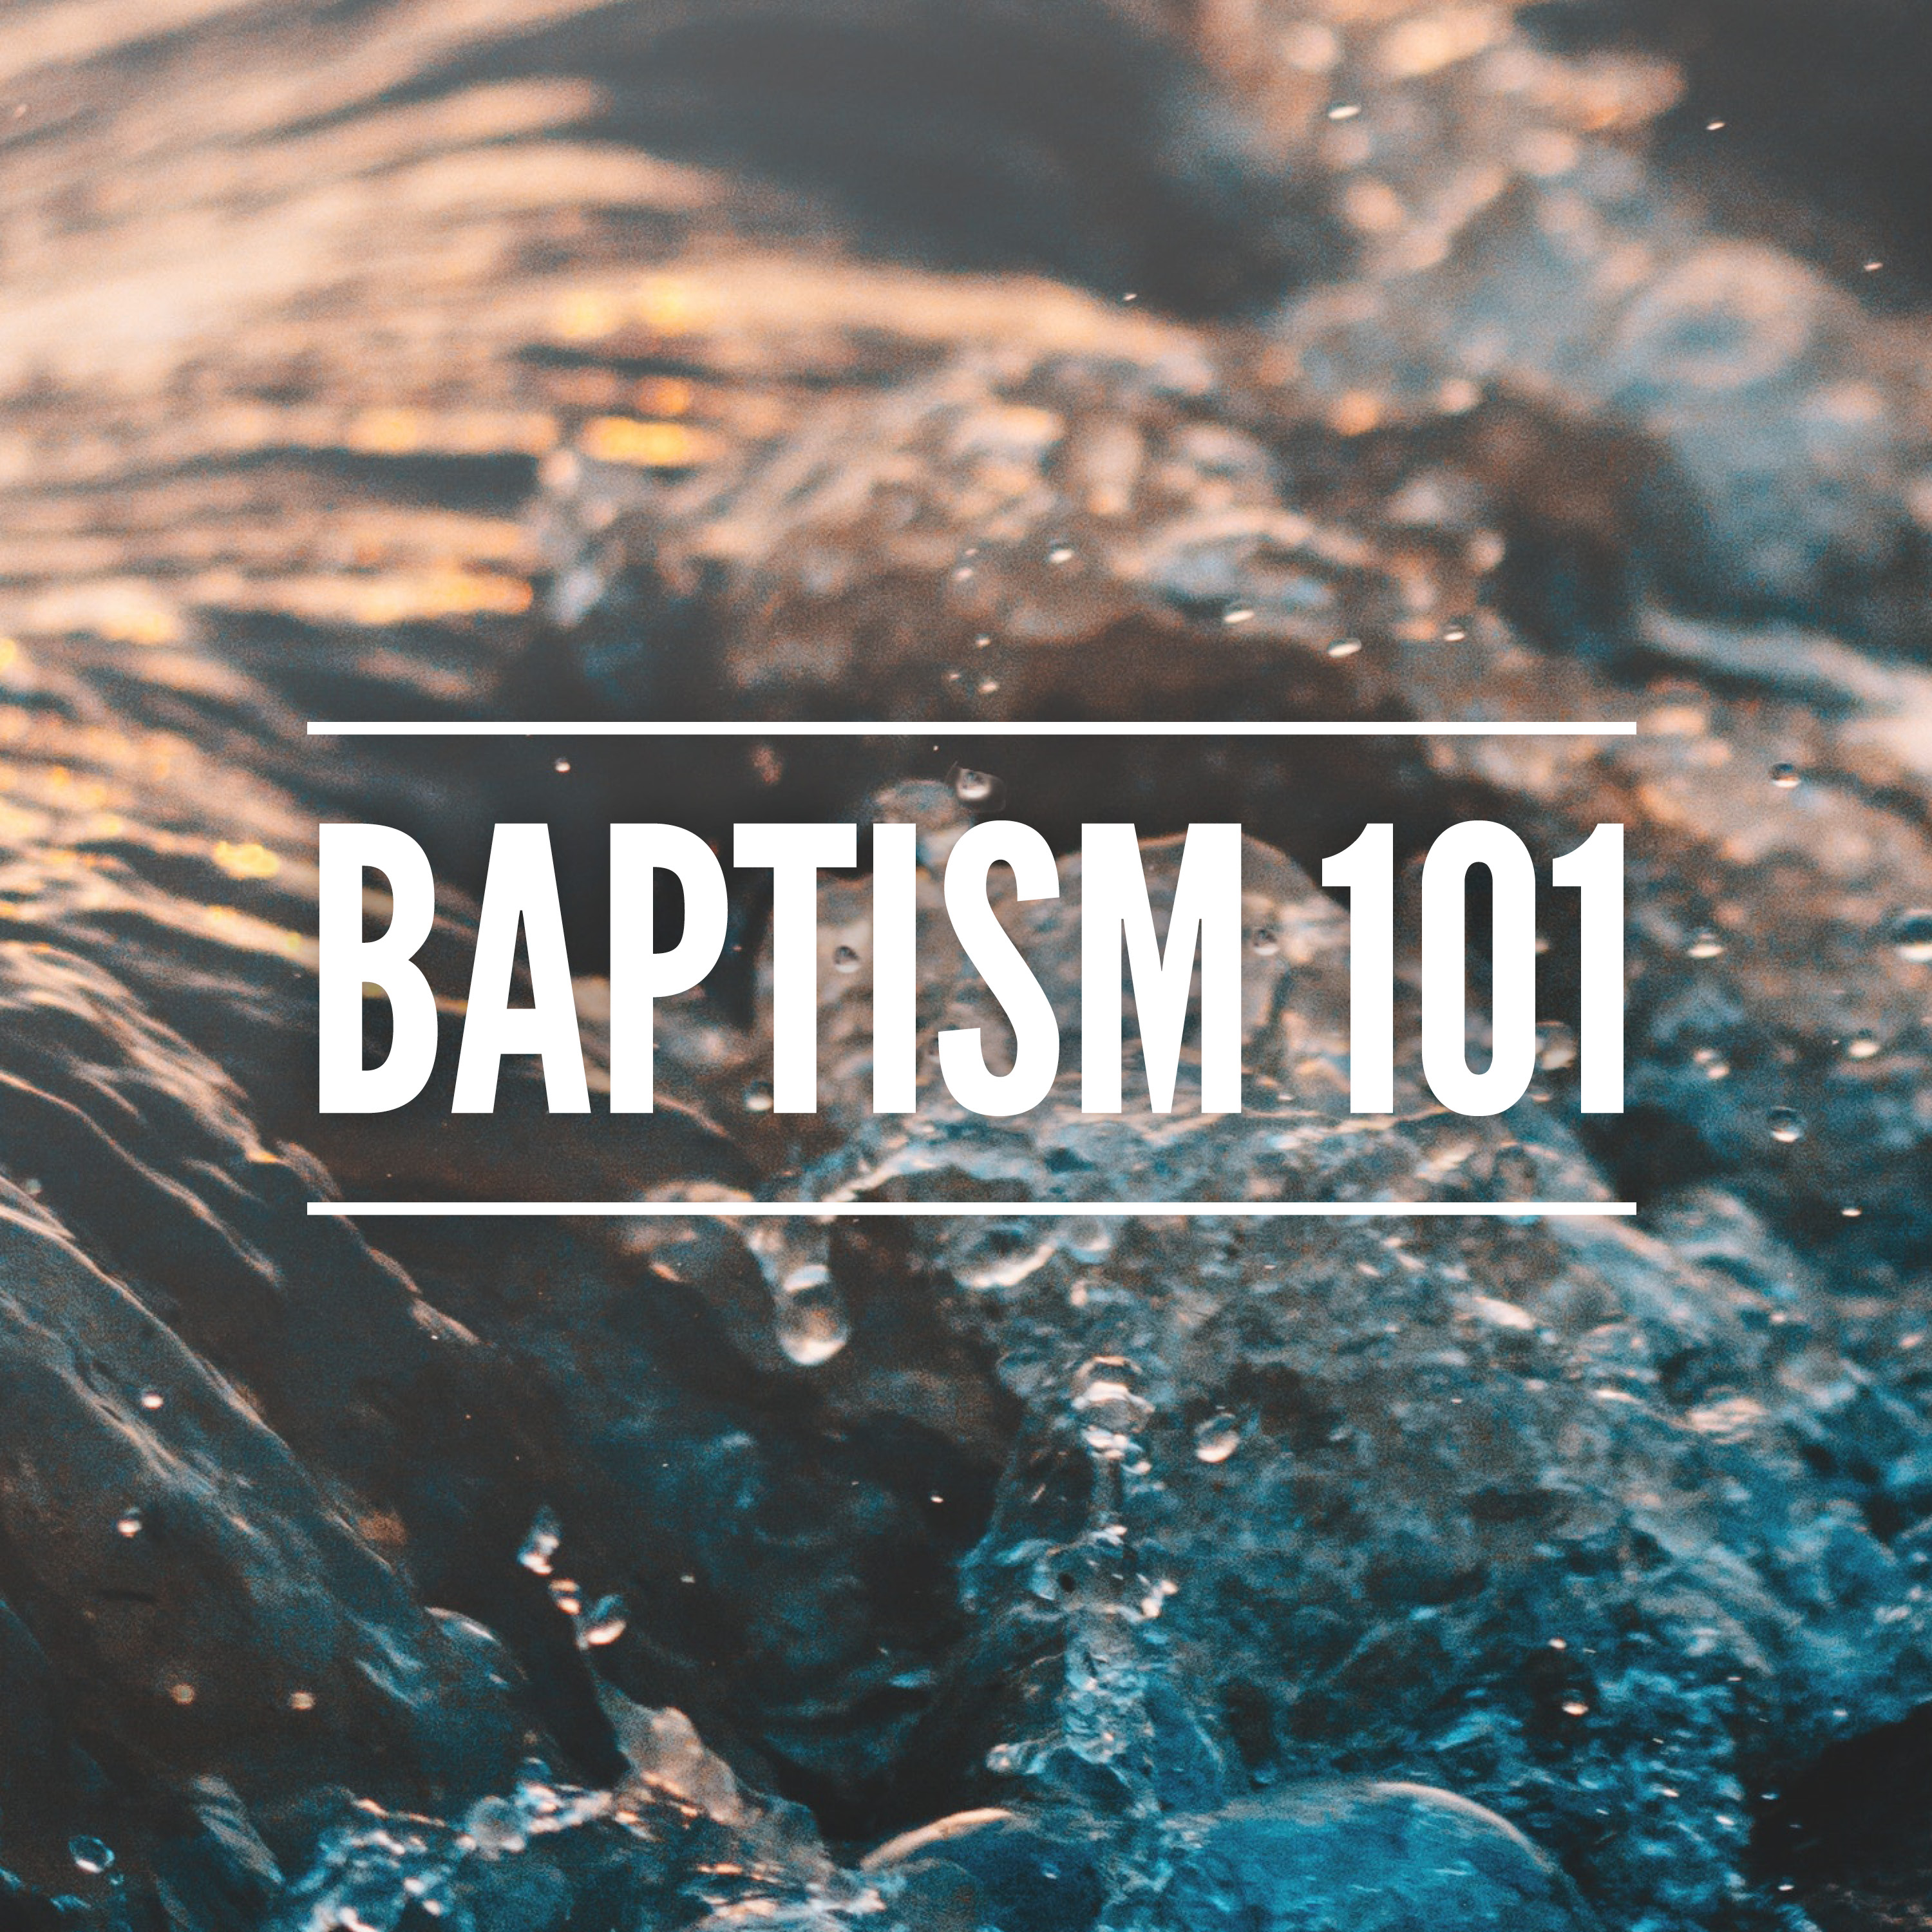 All About Baptism